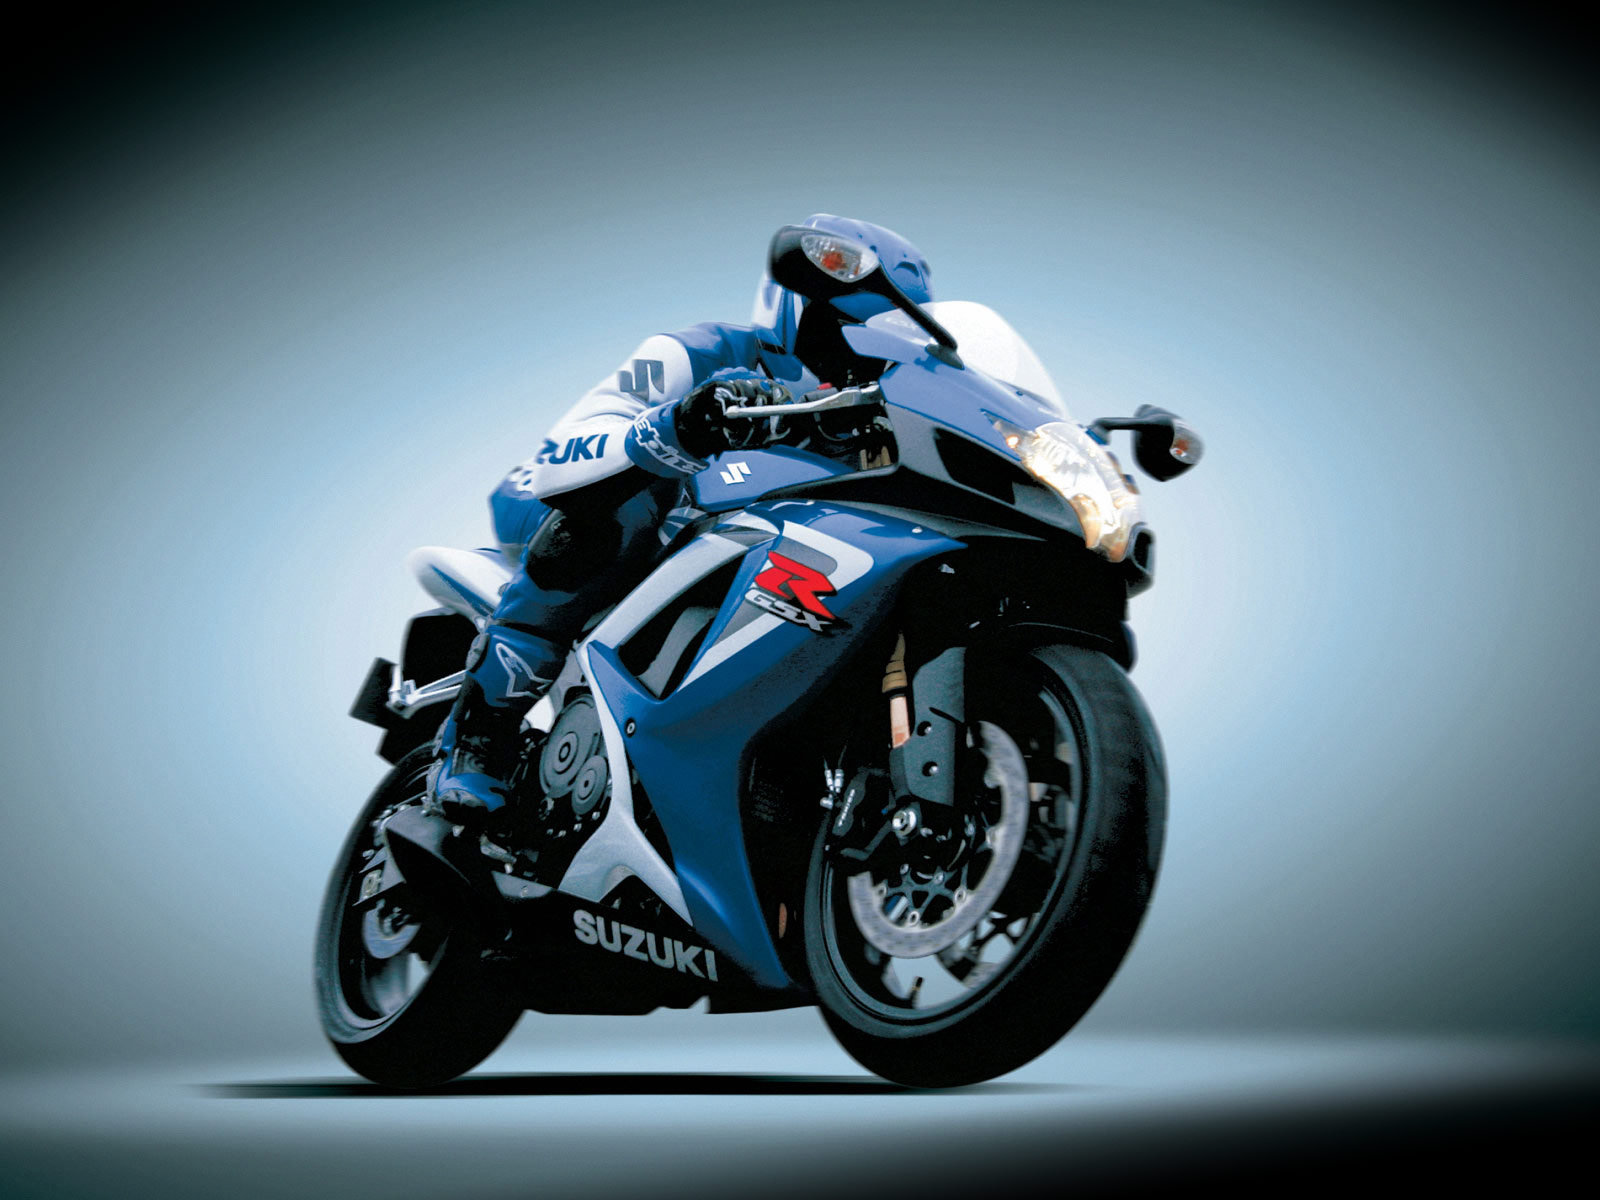 hd wallon  Gsxr 1000 K3 Wallpaper